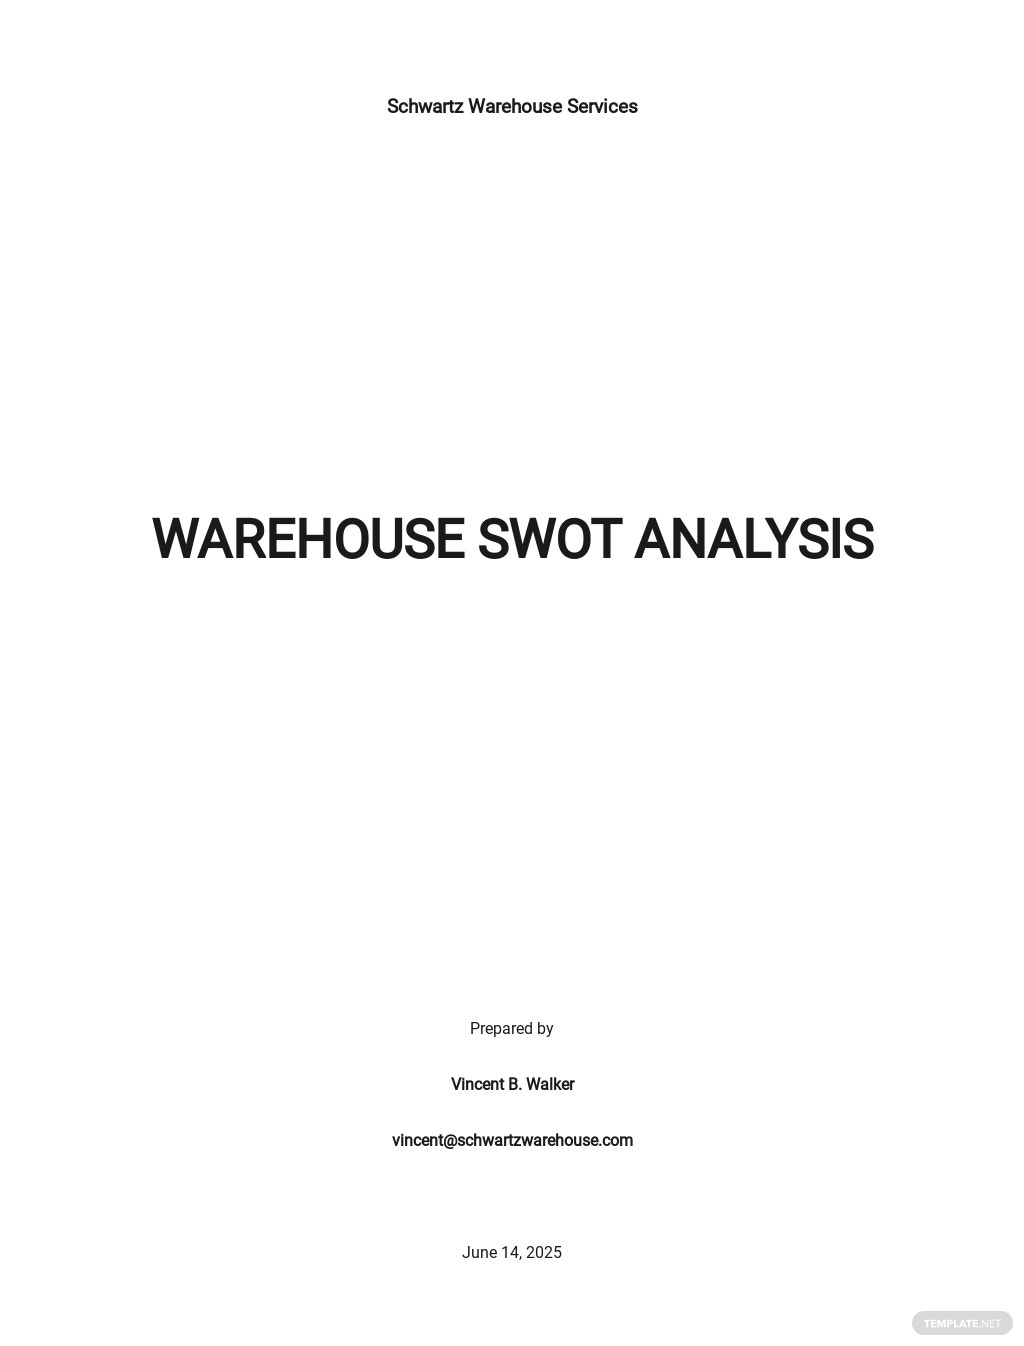 Warehouse swot analysis template